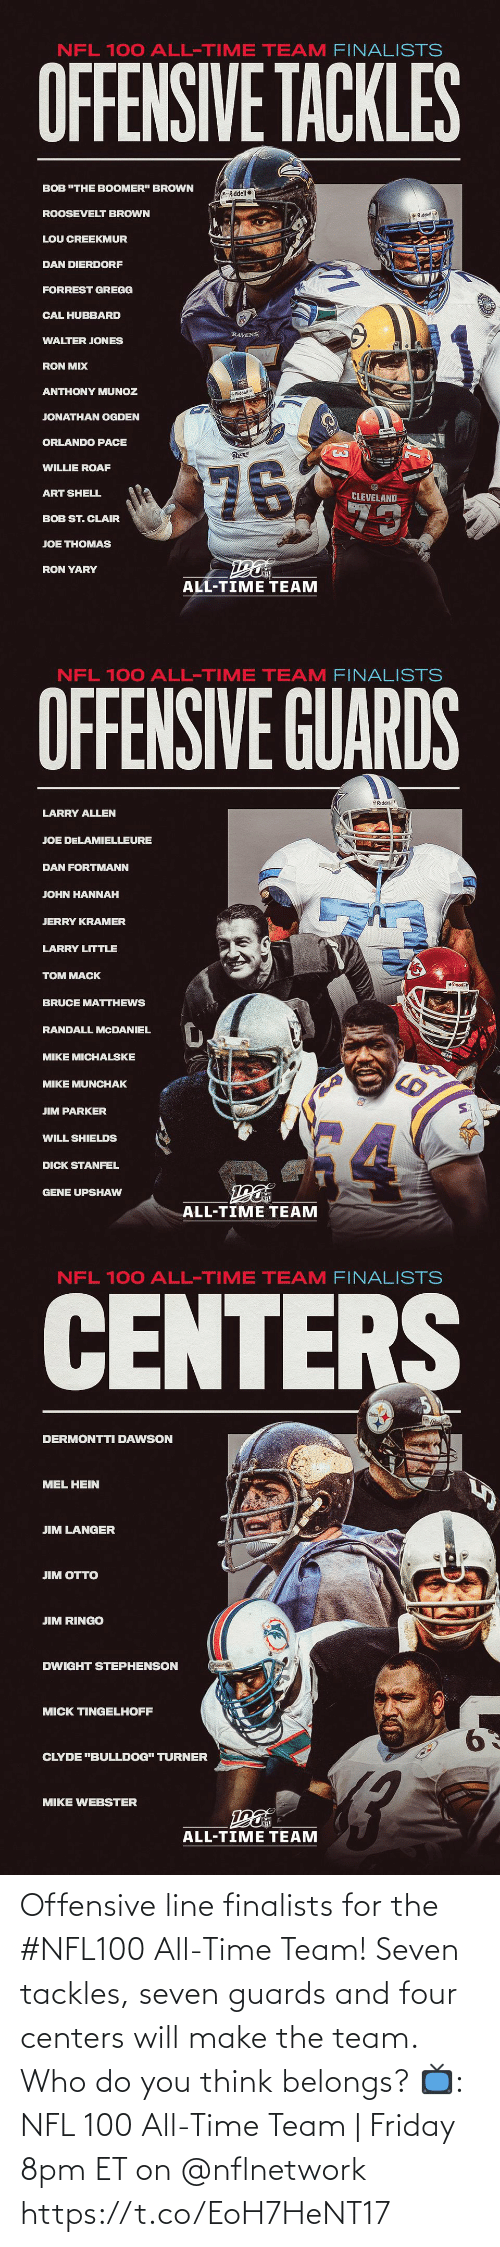 "Guards: NFL 100 ALL-TIME TEAM FINALISTS  OFFENSIVE TACKLES  BOB ""THE BOOMER"" BROWN  Riddel  ROOSEVELT BROWN  O Riddell  LOU CREEKMUR  DAN DIERDORF  FORREST GREGG  CAL HUBBARD  RAVENS  WALTER JONES  RON MIX  ANTHONY MUNOZ  Riddell  JONATHAN OGDEN  ORLANDO PACE  Rams  76  WILLIE ROAF  ART SHELL  CLEVELAND  73  BOB ST. CLAIR  JOE THOMAS  RON YARY  ALL-TIME TEAM   NFL 100 ALL-TIME TEAM FINALISTS  OFFENSIVE GUARDS  Riddel  LARRY ALLEN  JOE DELAMIELLEURE  DAN FORTMANN  JOHN HANNAH  JERRY KRAMER  LARRY LITTLE  TOM MACK  BRUCE MATTHEWS  RANDALL MCDANIEL  MIKE MICHALSKE  MIKE MUNCHAK  JIM PARKER  WILL SHIELDS  DICK STANFEL  GENE UPSHAW  ALL-TIME TEAM   NFL 100 ALL-TIME TEAM FINALISTS  CENTERS  DERMONTTI DAWSON  MEL HEIN  JIM LANGER  ЛM OТTO  JIM RINGO  DWIGHT STEPHENSON  MICK TINGELHOFF  9.  CLYDE ""BULLDOG"" TURNER  MIKE WEBSTER  ALL-TIME TEAM Offensive line finalists for the #NFL100 All-Time Team!  Seven tackles, seven guards and four centers will make the team. Who do you think belongs?  📺: NFL 100 All-Time Team 